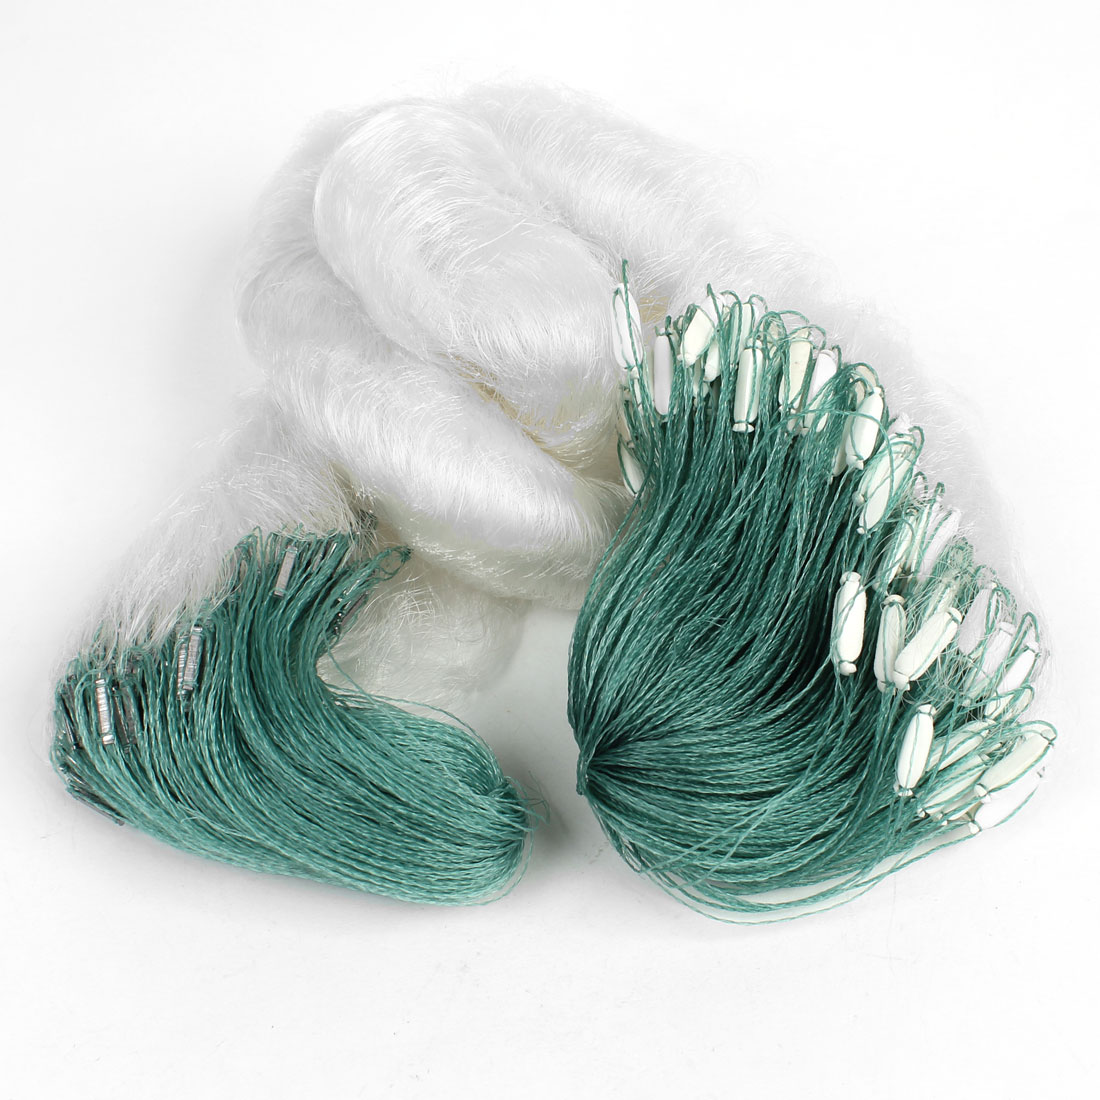 Gillnetting 2.5cmx2.5cm Mesh Net Fishing Gillnet 40mx1.1m w Fish Floats